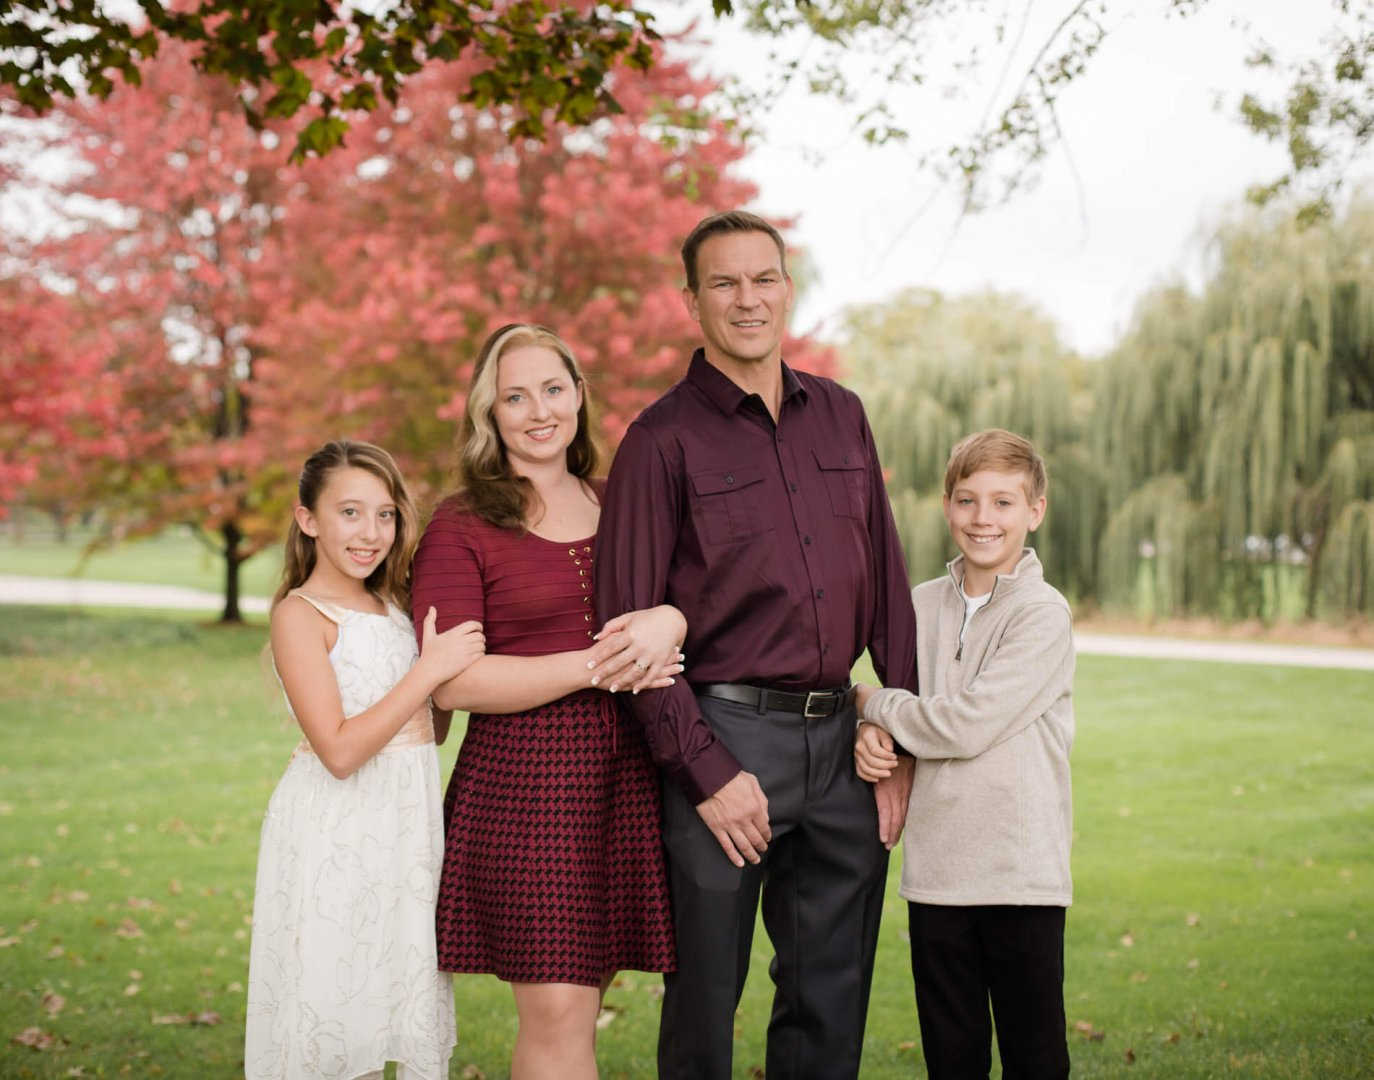 SandyConwayPhotography_Families--4